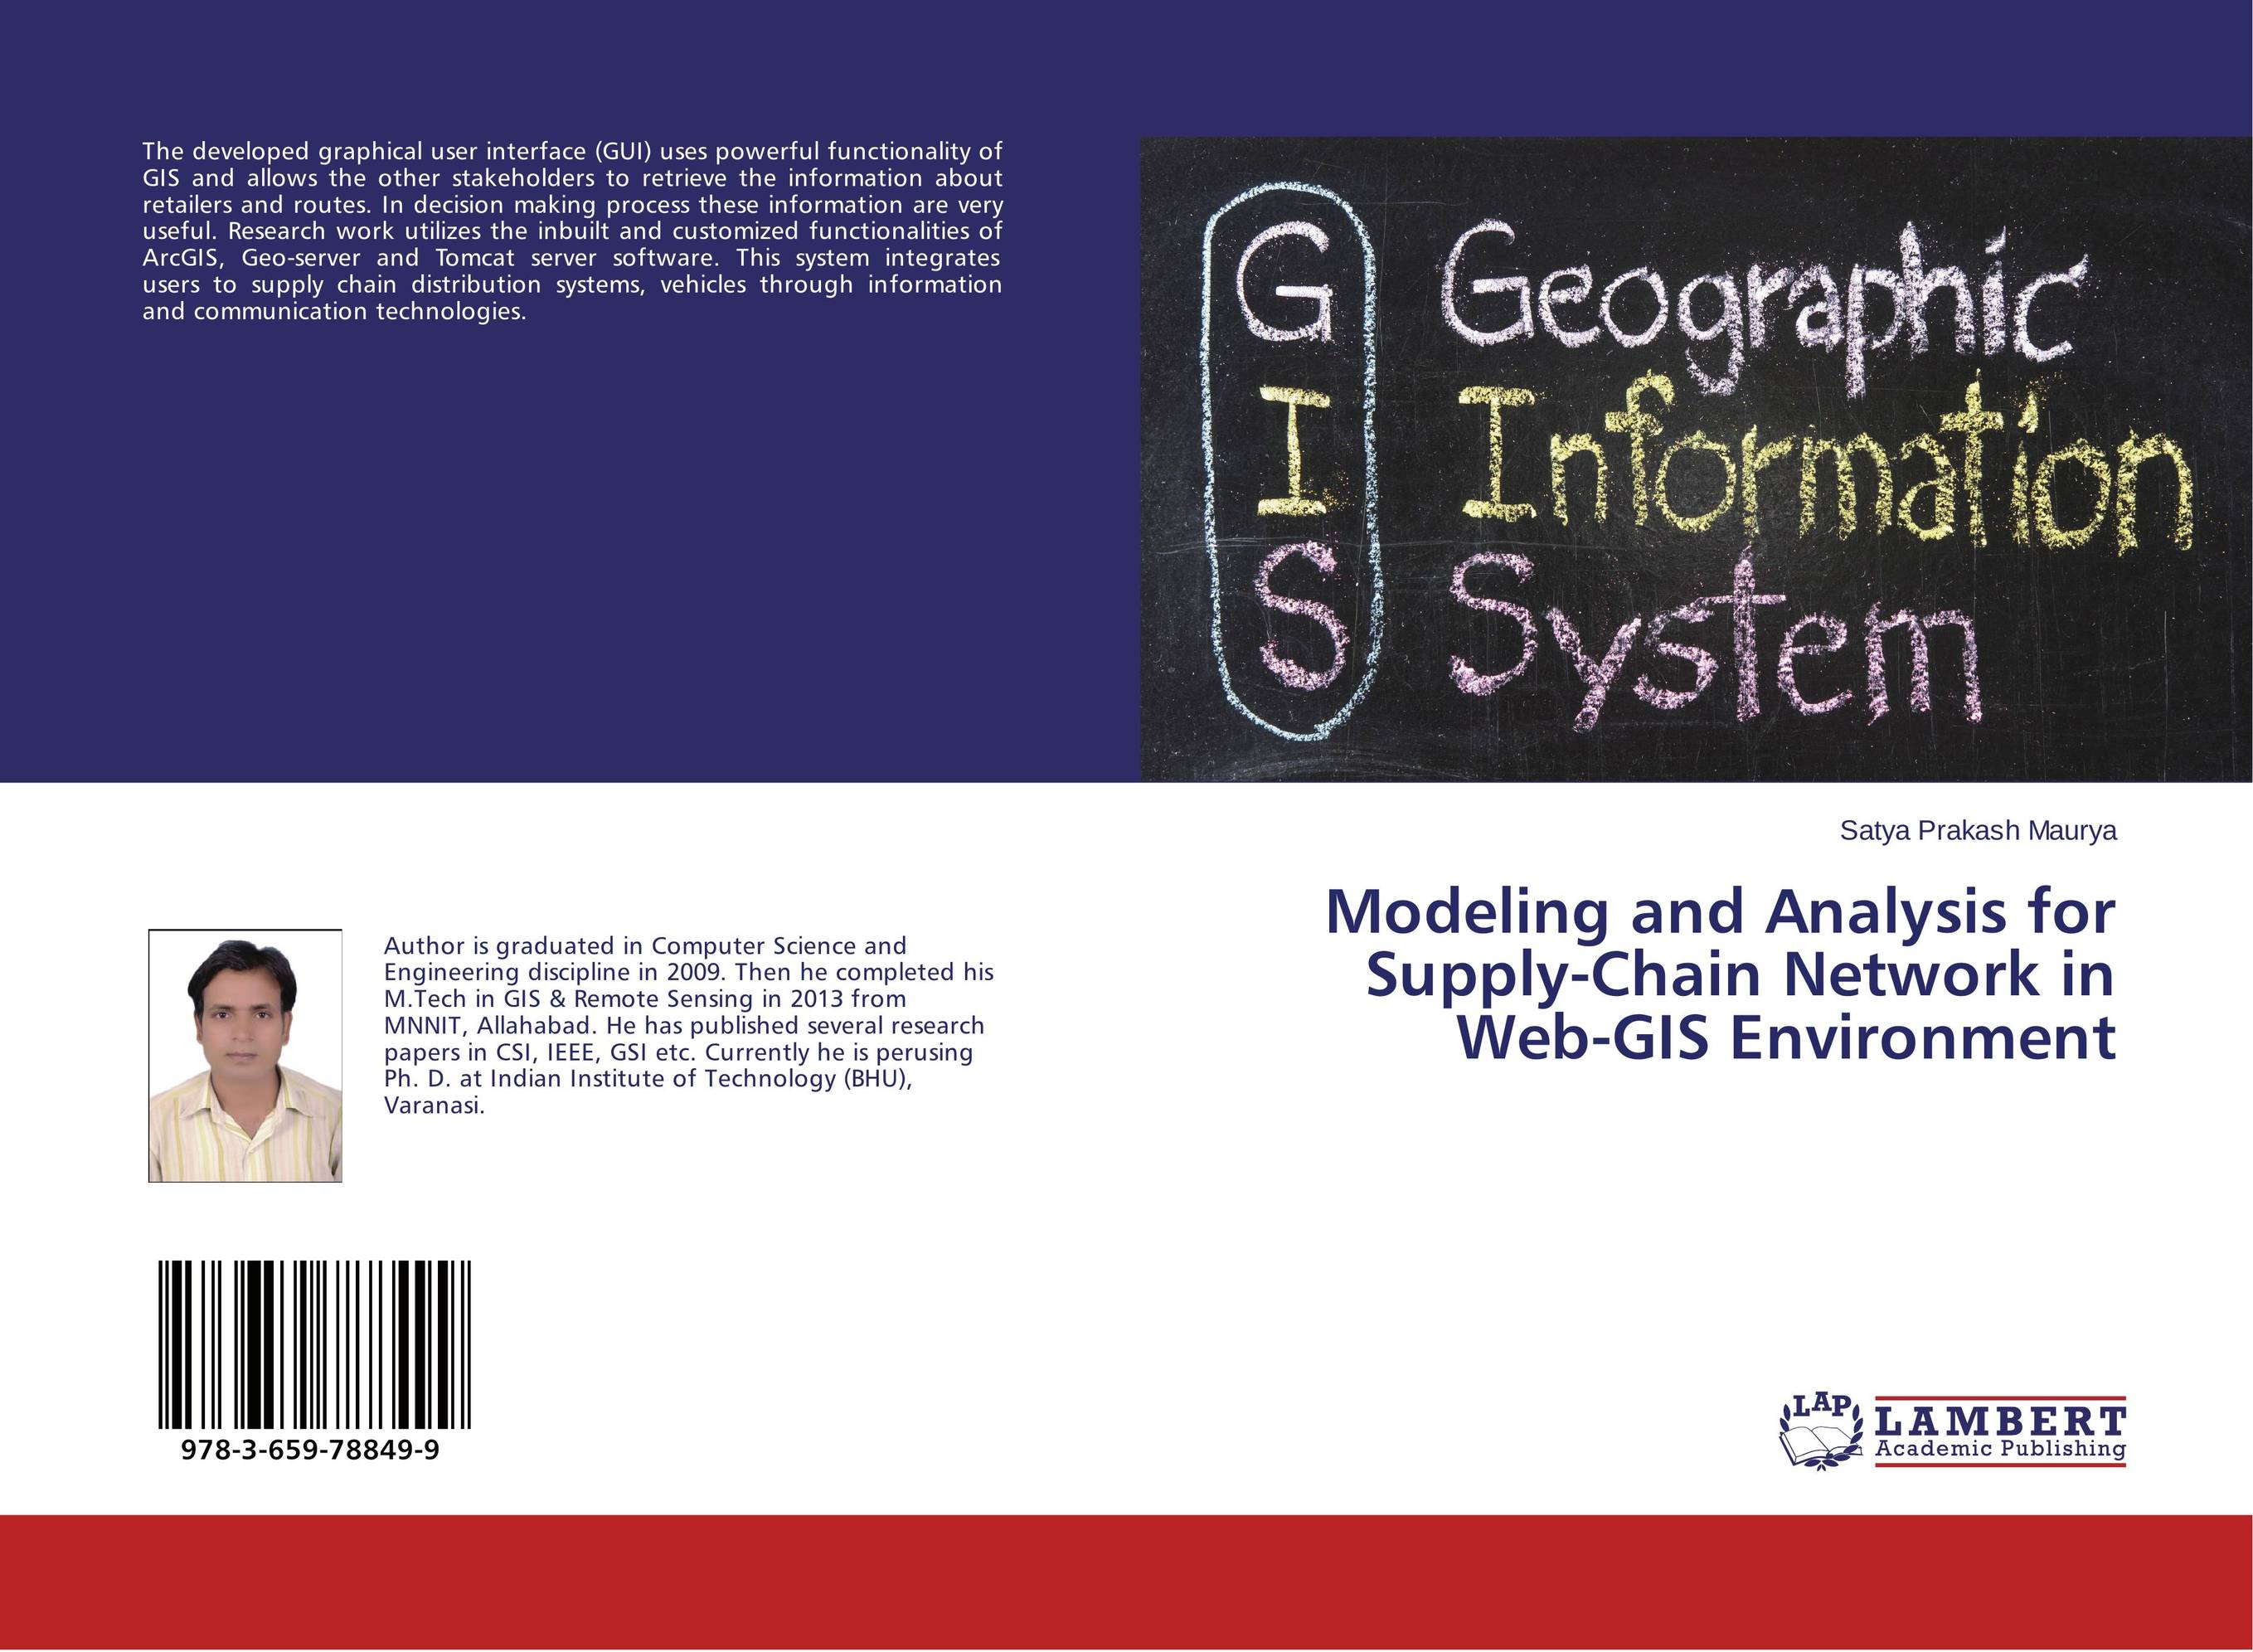 Modeling and Analysis for Supply-Chain Network in Web-GIS Environment paichuan chen extending the quandt ramsey modeling to survival analysis